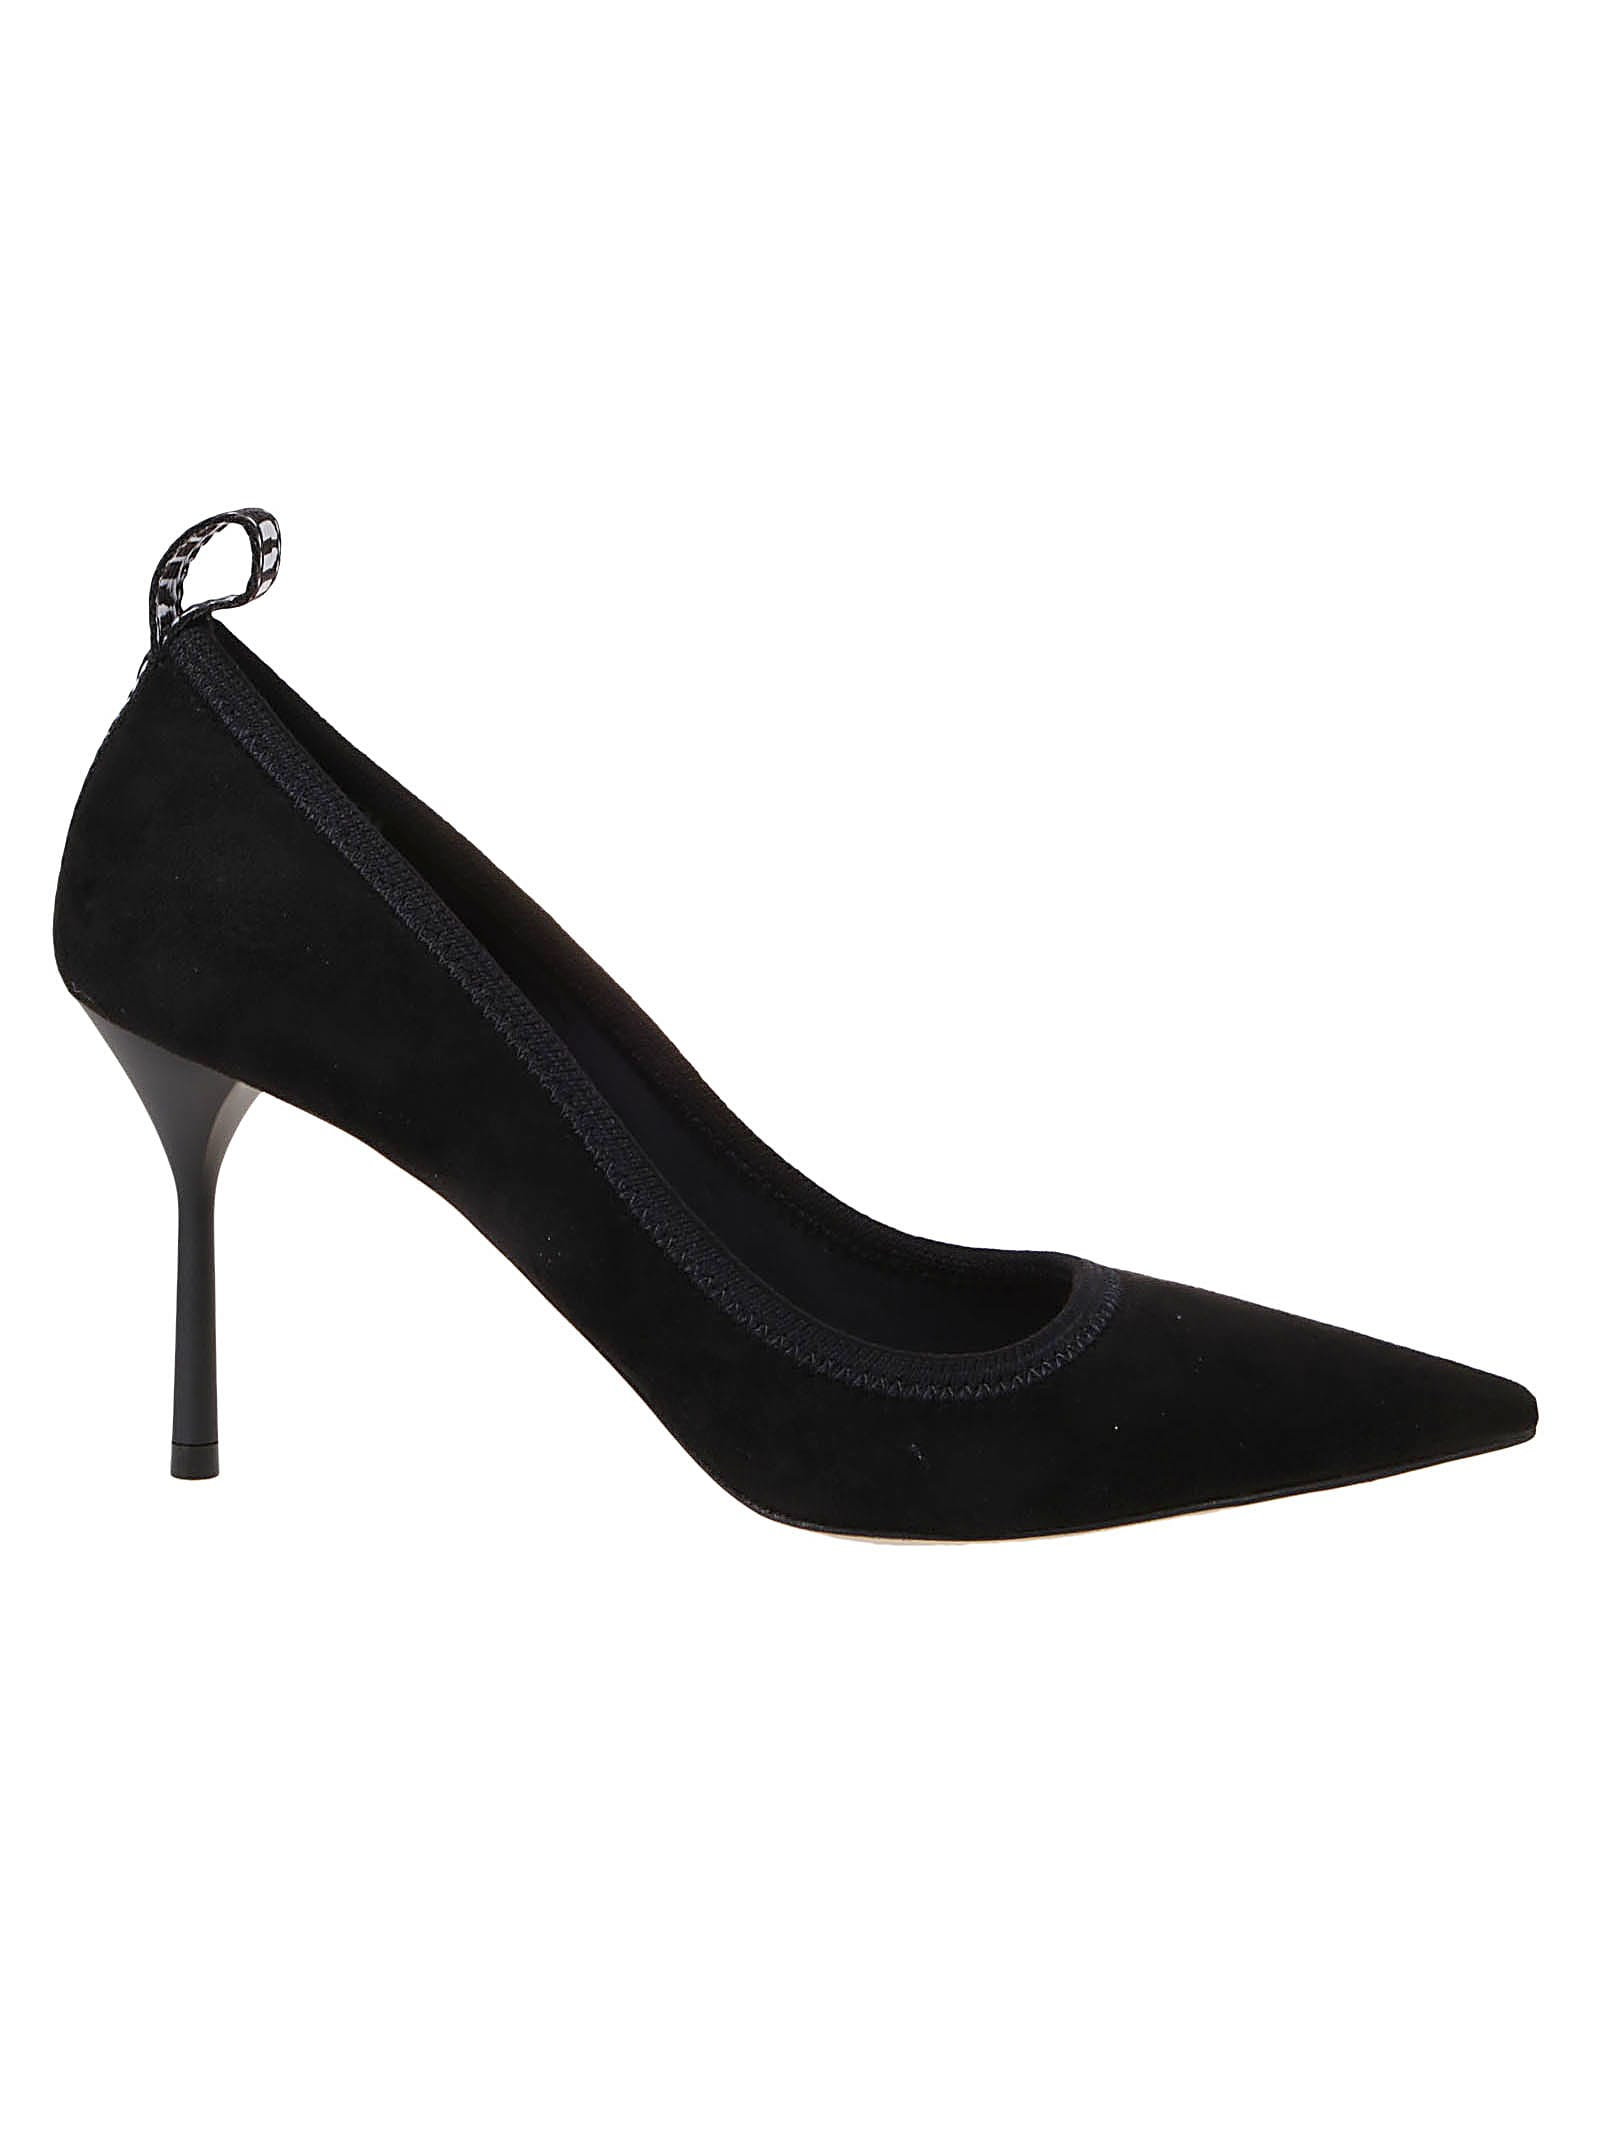 Miu Miu CLASSIC POINTED TOE PUMPS